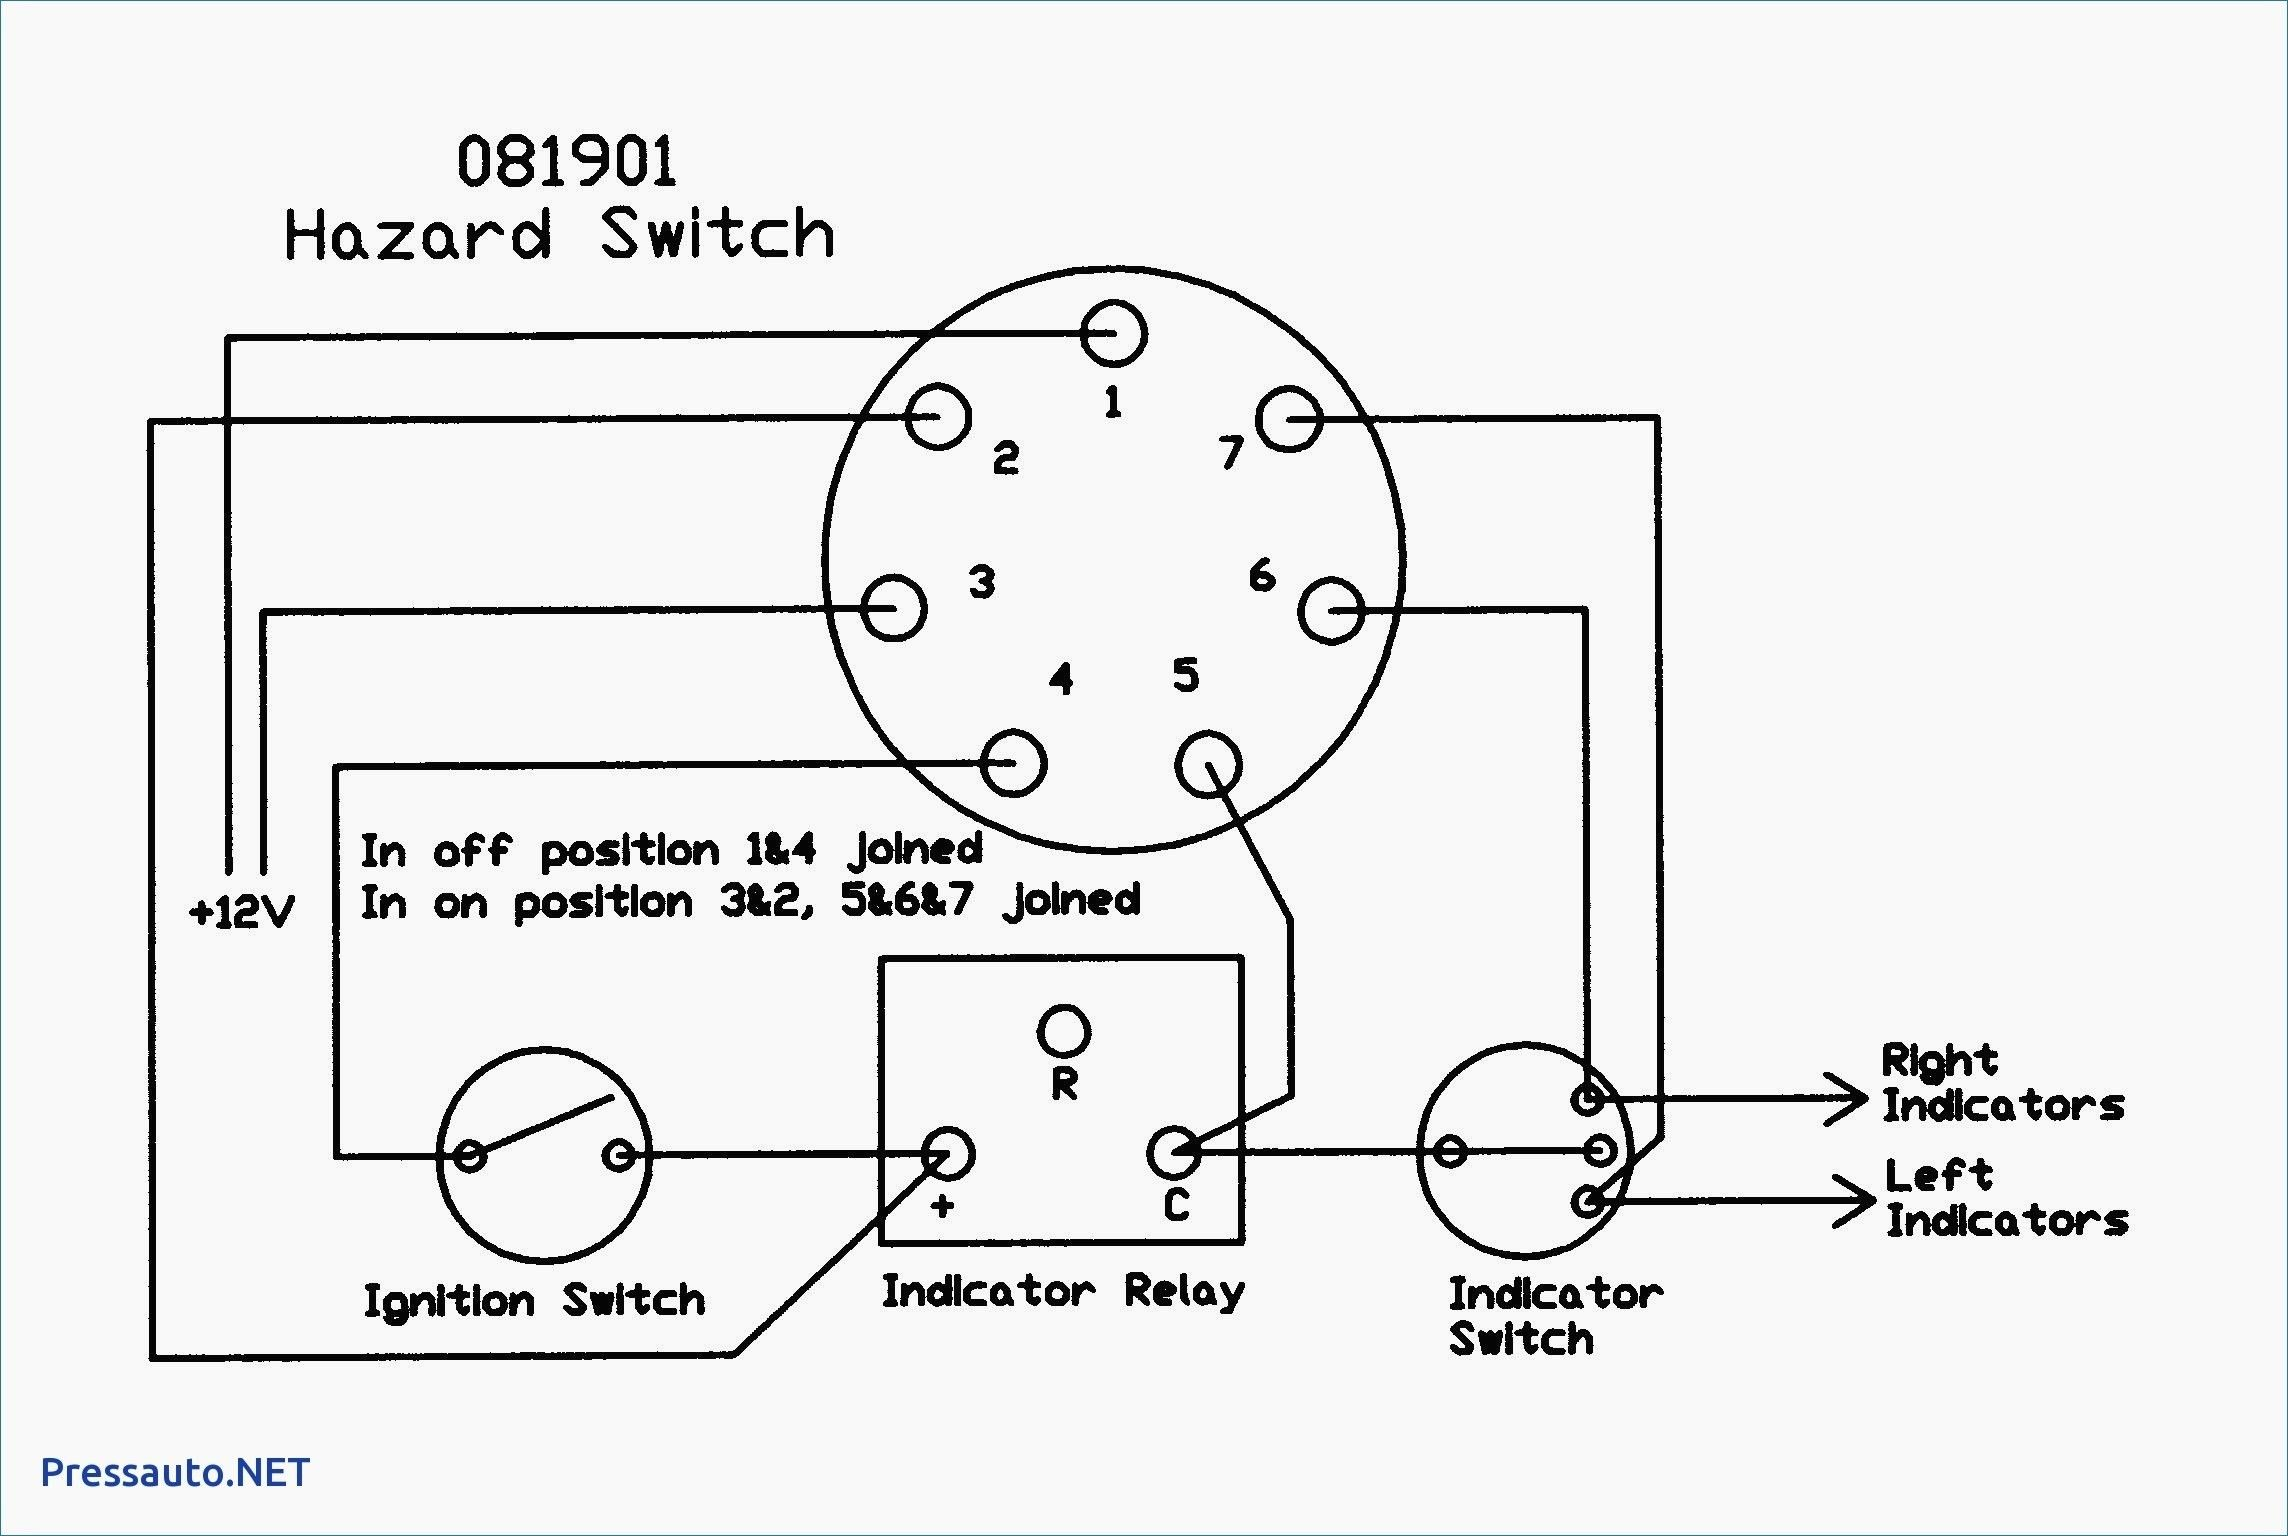 Awesome Wiring Diagram For Motorcycle Hazard Lights Diagrams Digramssample Diagramimages Wiringdiagra Light Switch Wiring Generator Transfer Switch Diagram